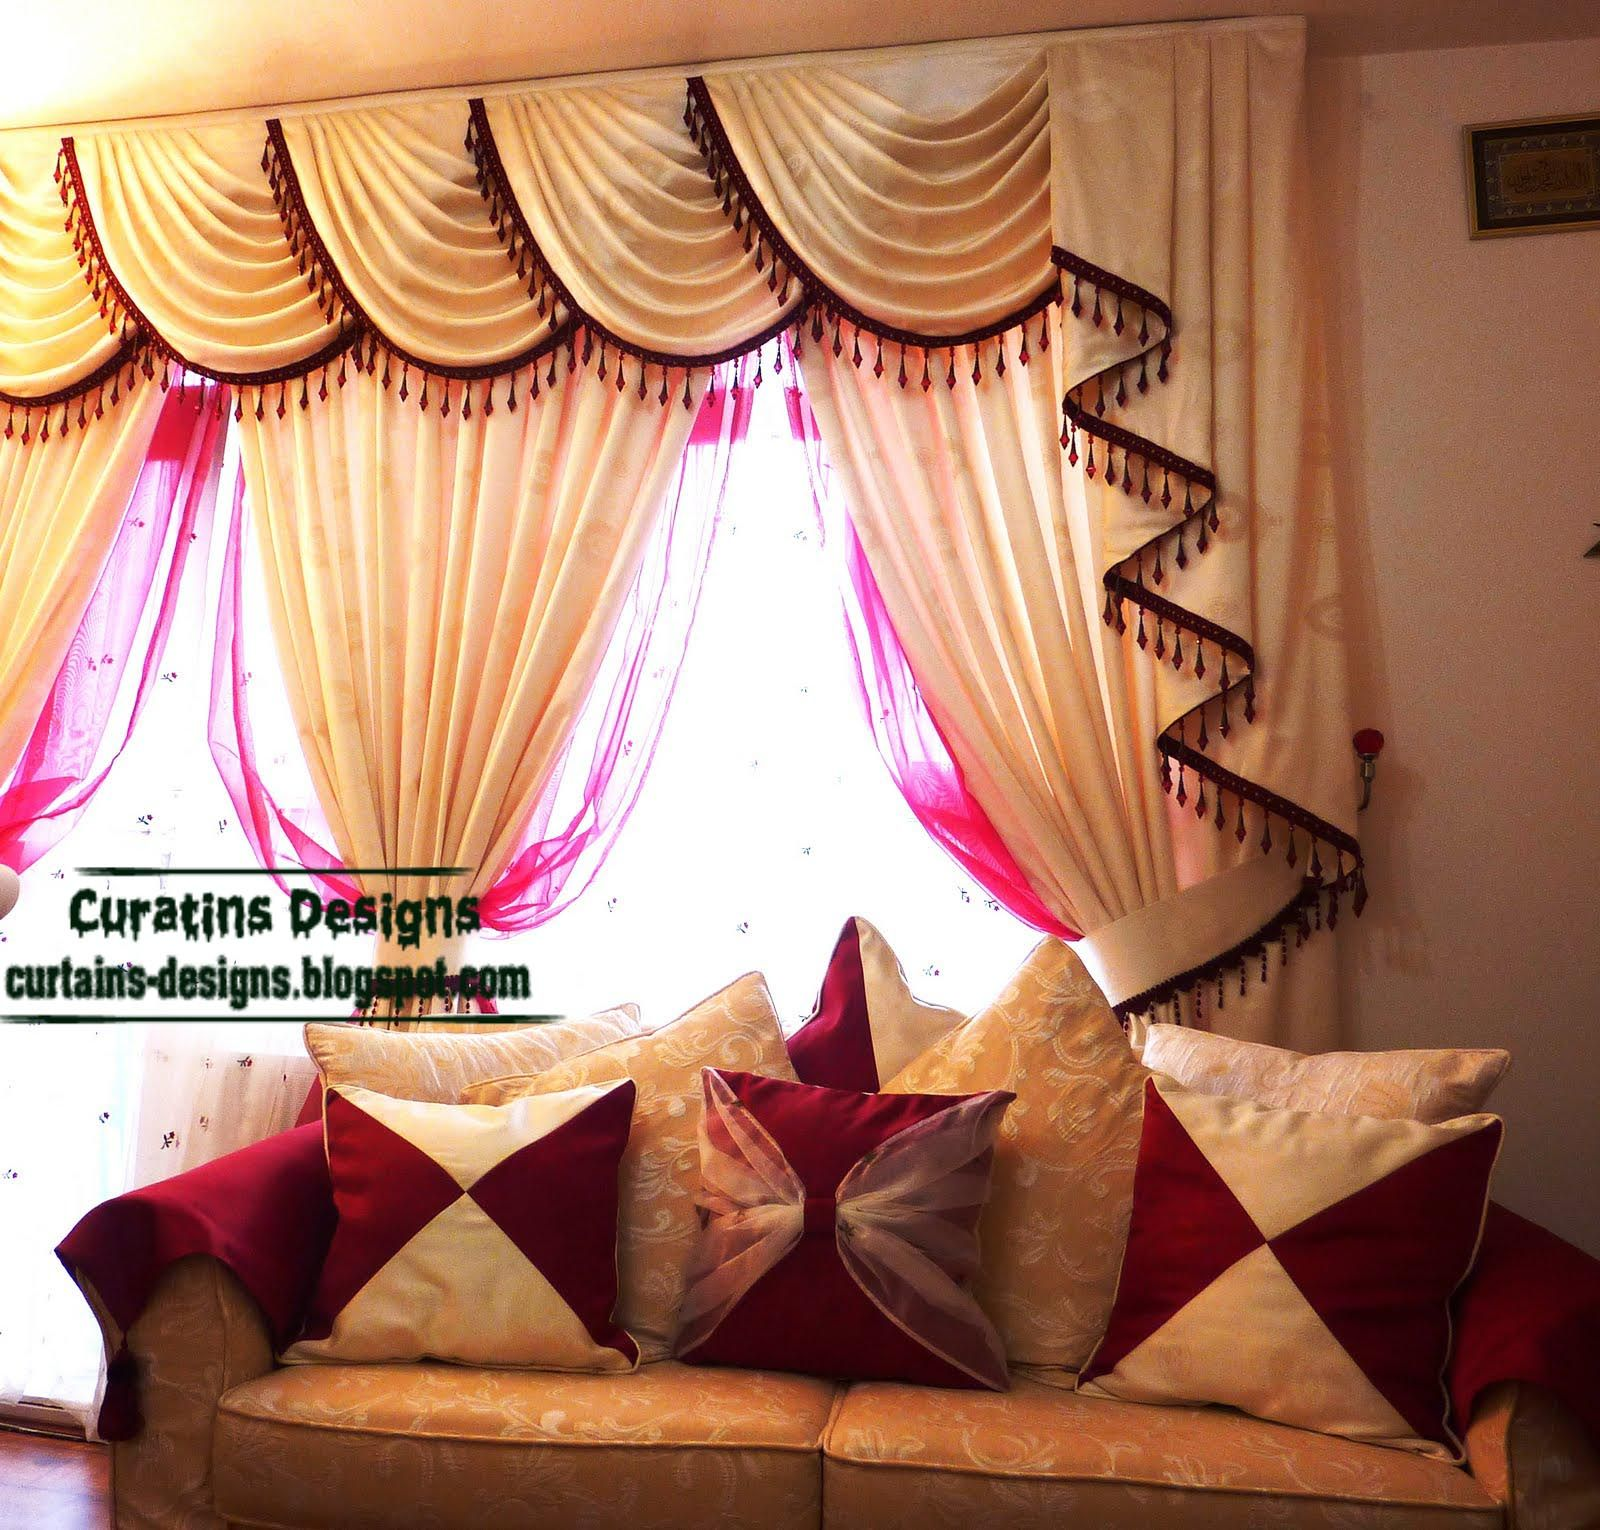 Living Room Curtain Design Delectable Livingroomcurtains  Indian Drapes Curtain Design For Living Review